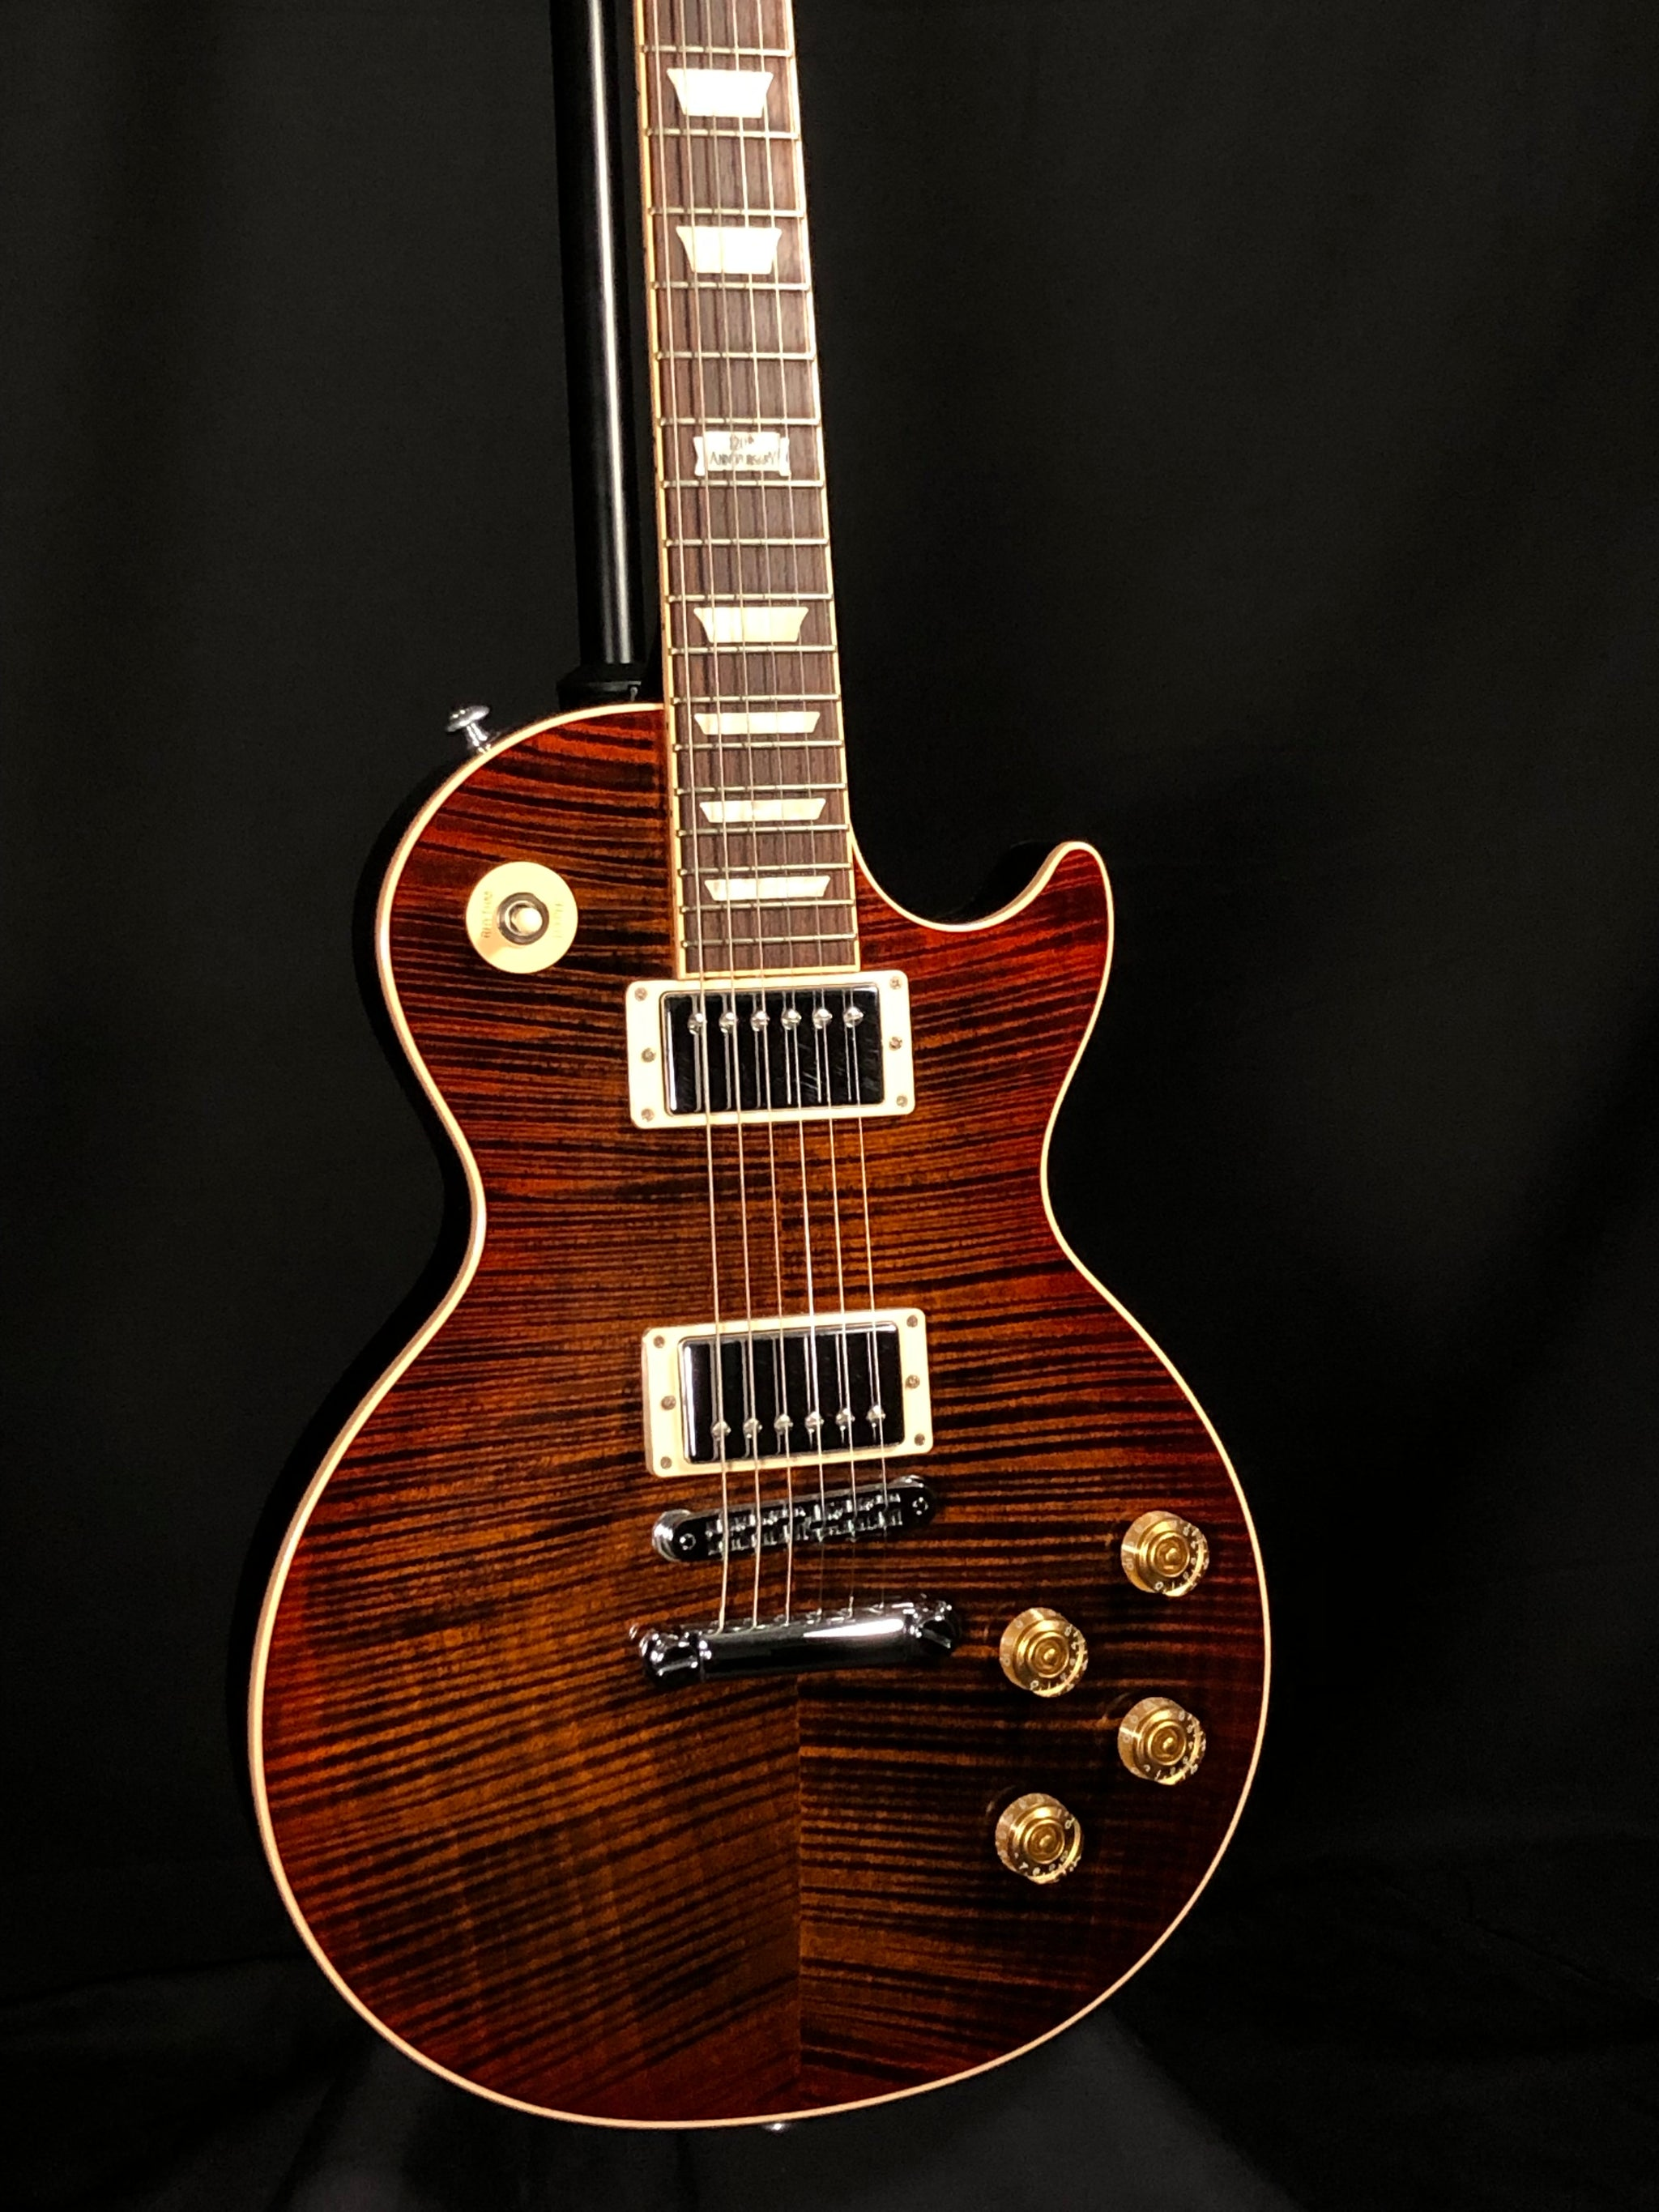 2015 Gibson Les Paul Book-Matched Flame Top!